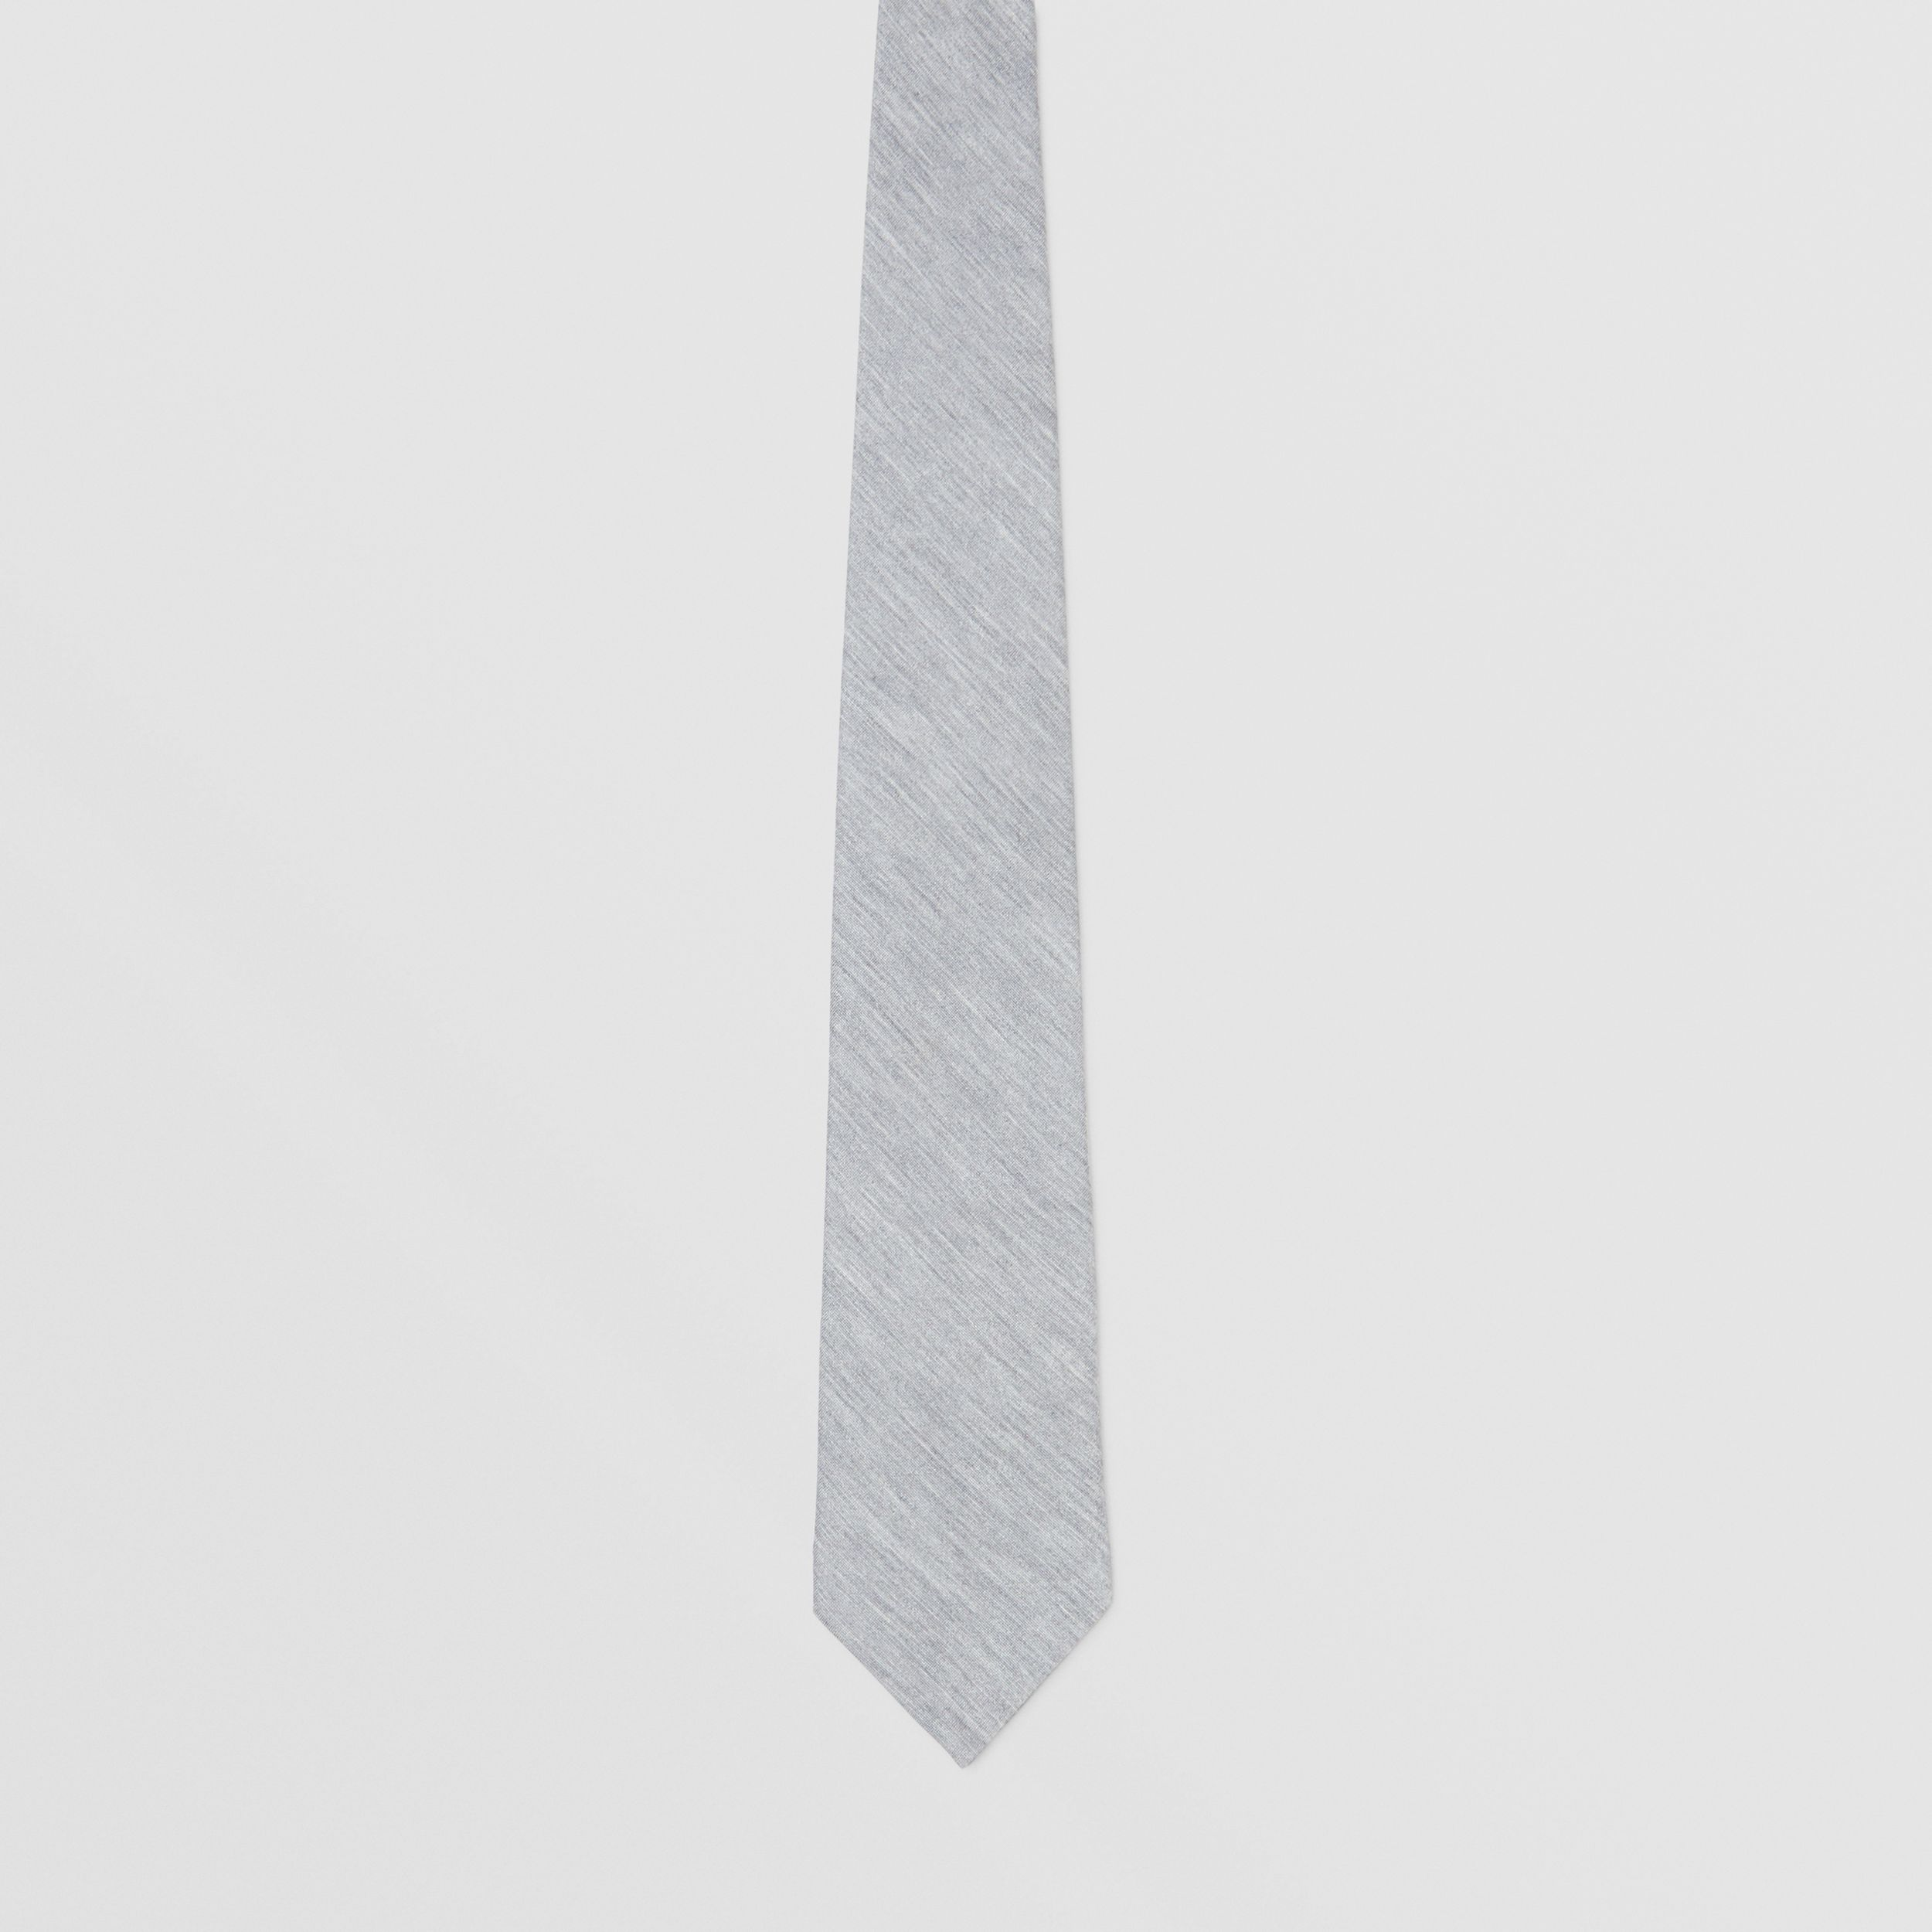 Classic Cut Silk Jersey Tie in Light Pebble Grey - Men | Burberry - 4